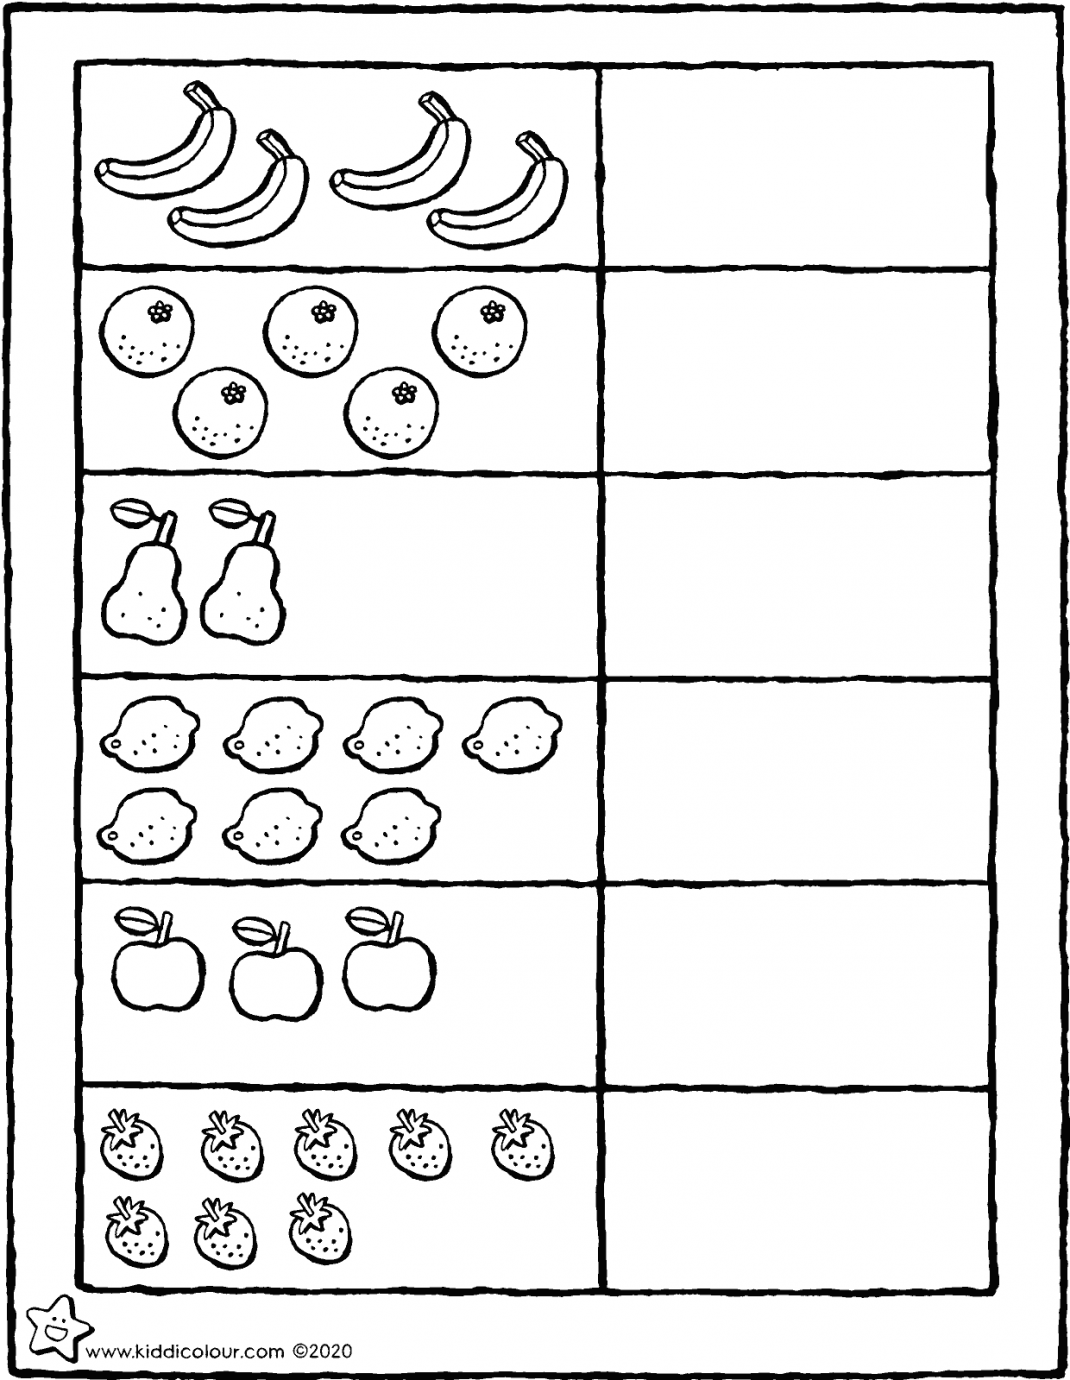 draw the same number of circles as pieces of fruit colouring page drawing picture 01V